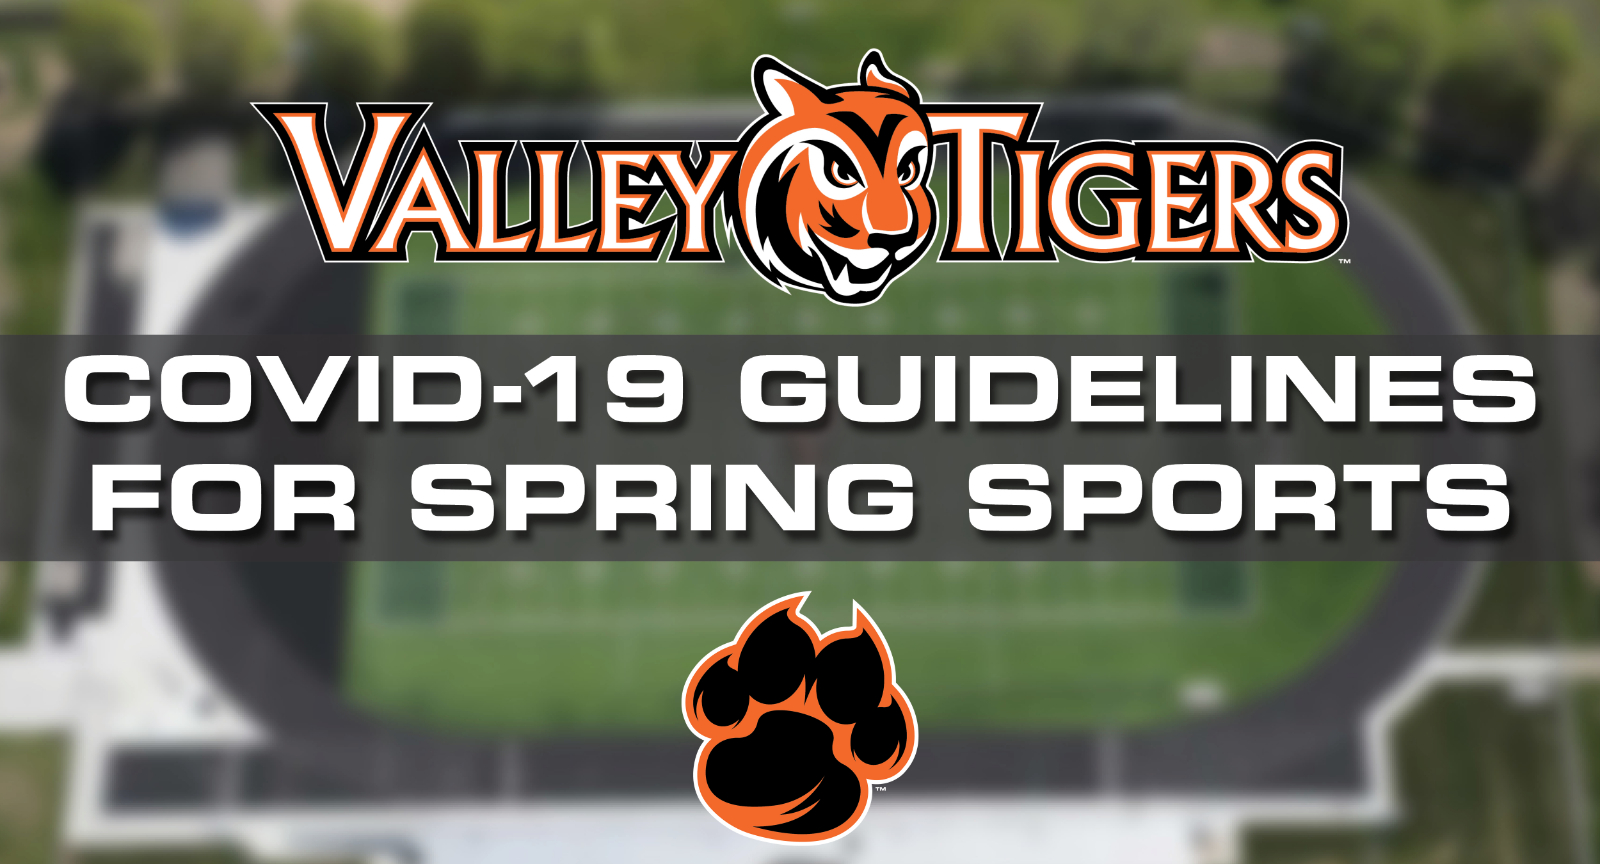 valley tigers covid-19 spring sports promo 300